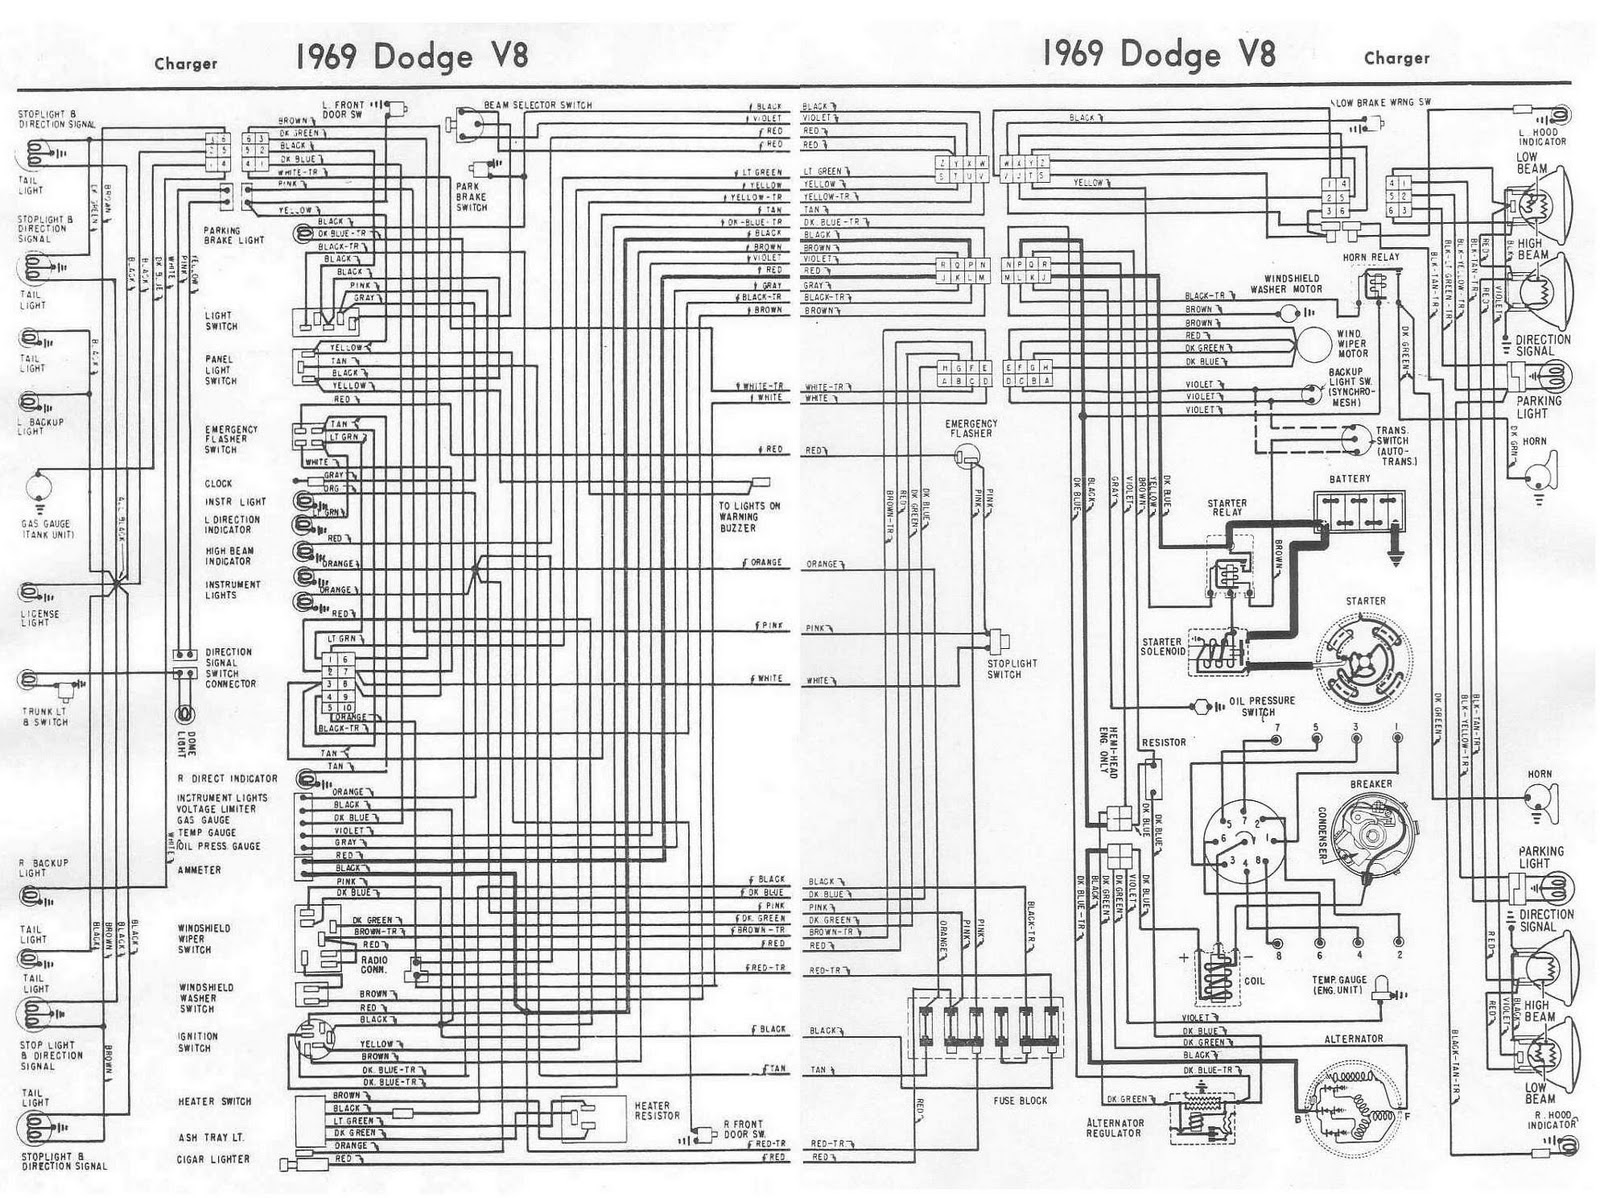 DIAGRAM] 68 Dodge Wiring Diagram FULL Version HD Quality Wiring Diagram -  EZDIAGRAM.SANITACALABRIA.ITBest Diagram Database - sanitacalabria.it